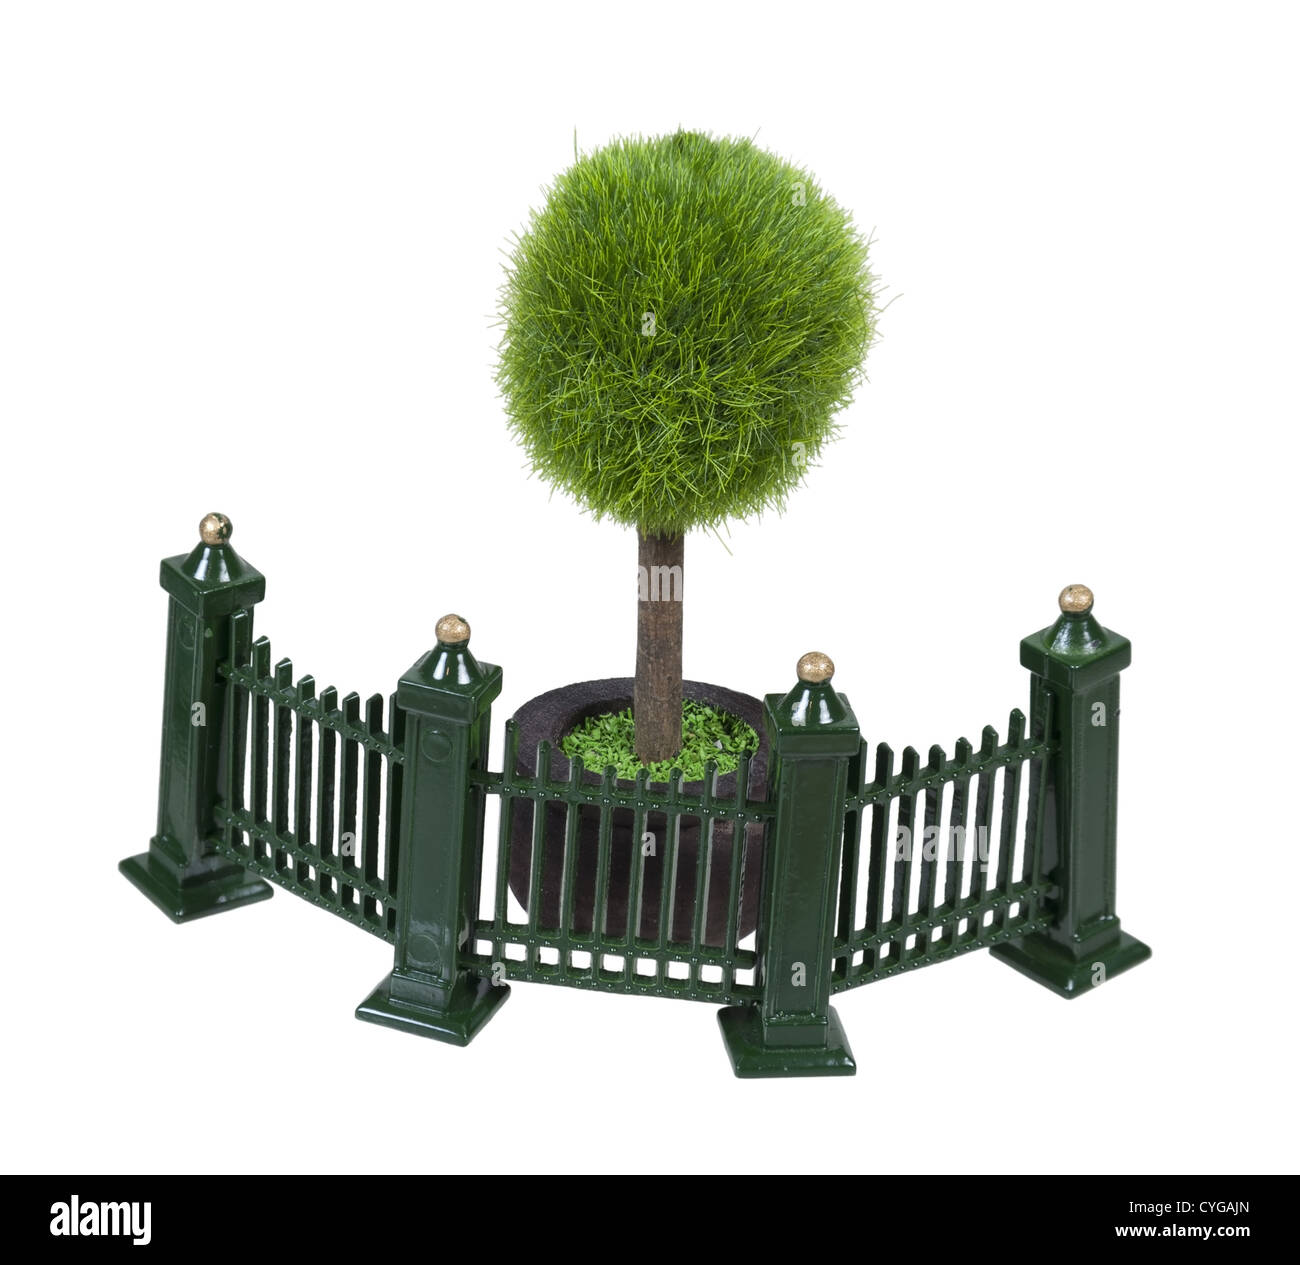 Metal fence with scrollwork painted green in front of a potted tree - Stock Image